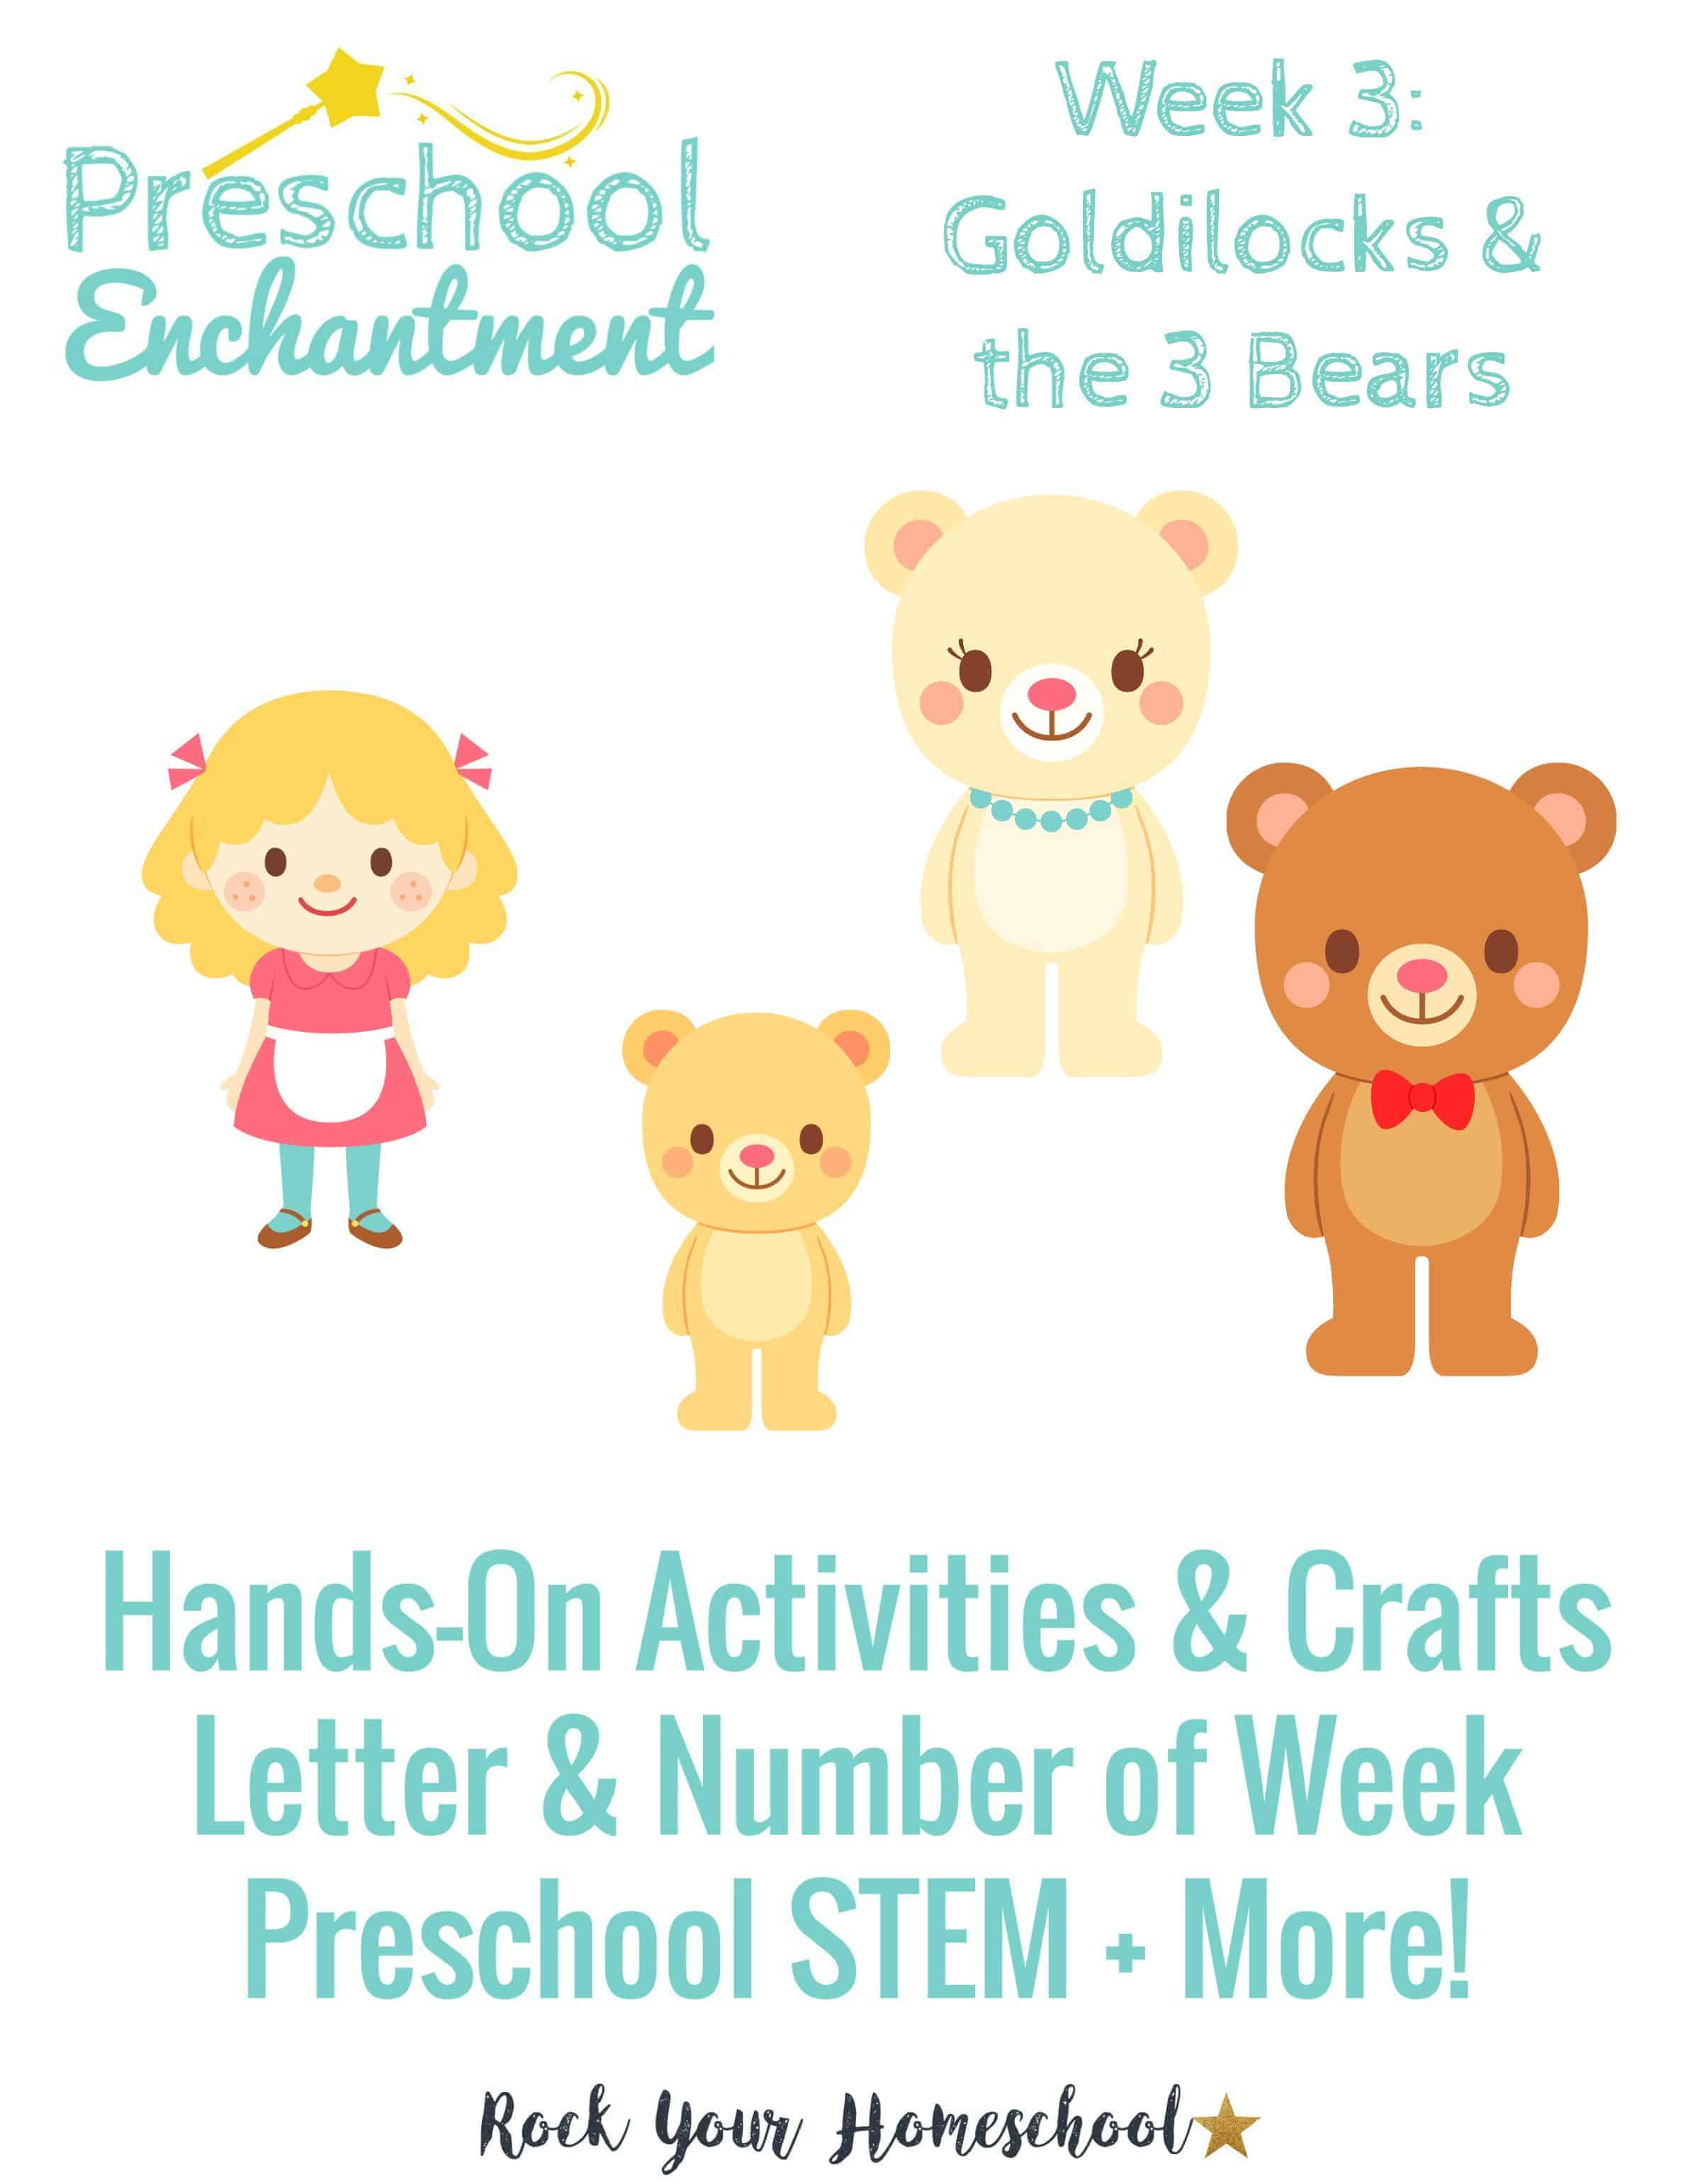 Preschool Enchantment Unit Study Week 3 Goldilocks